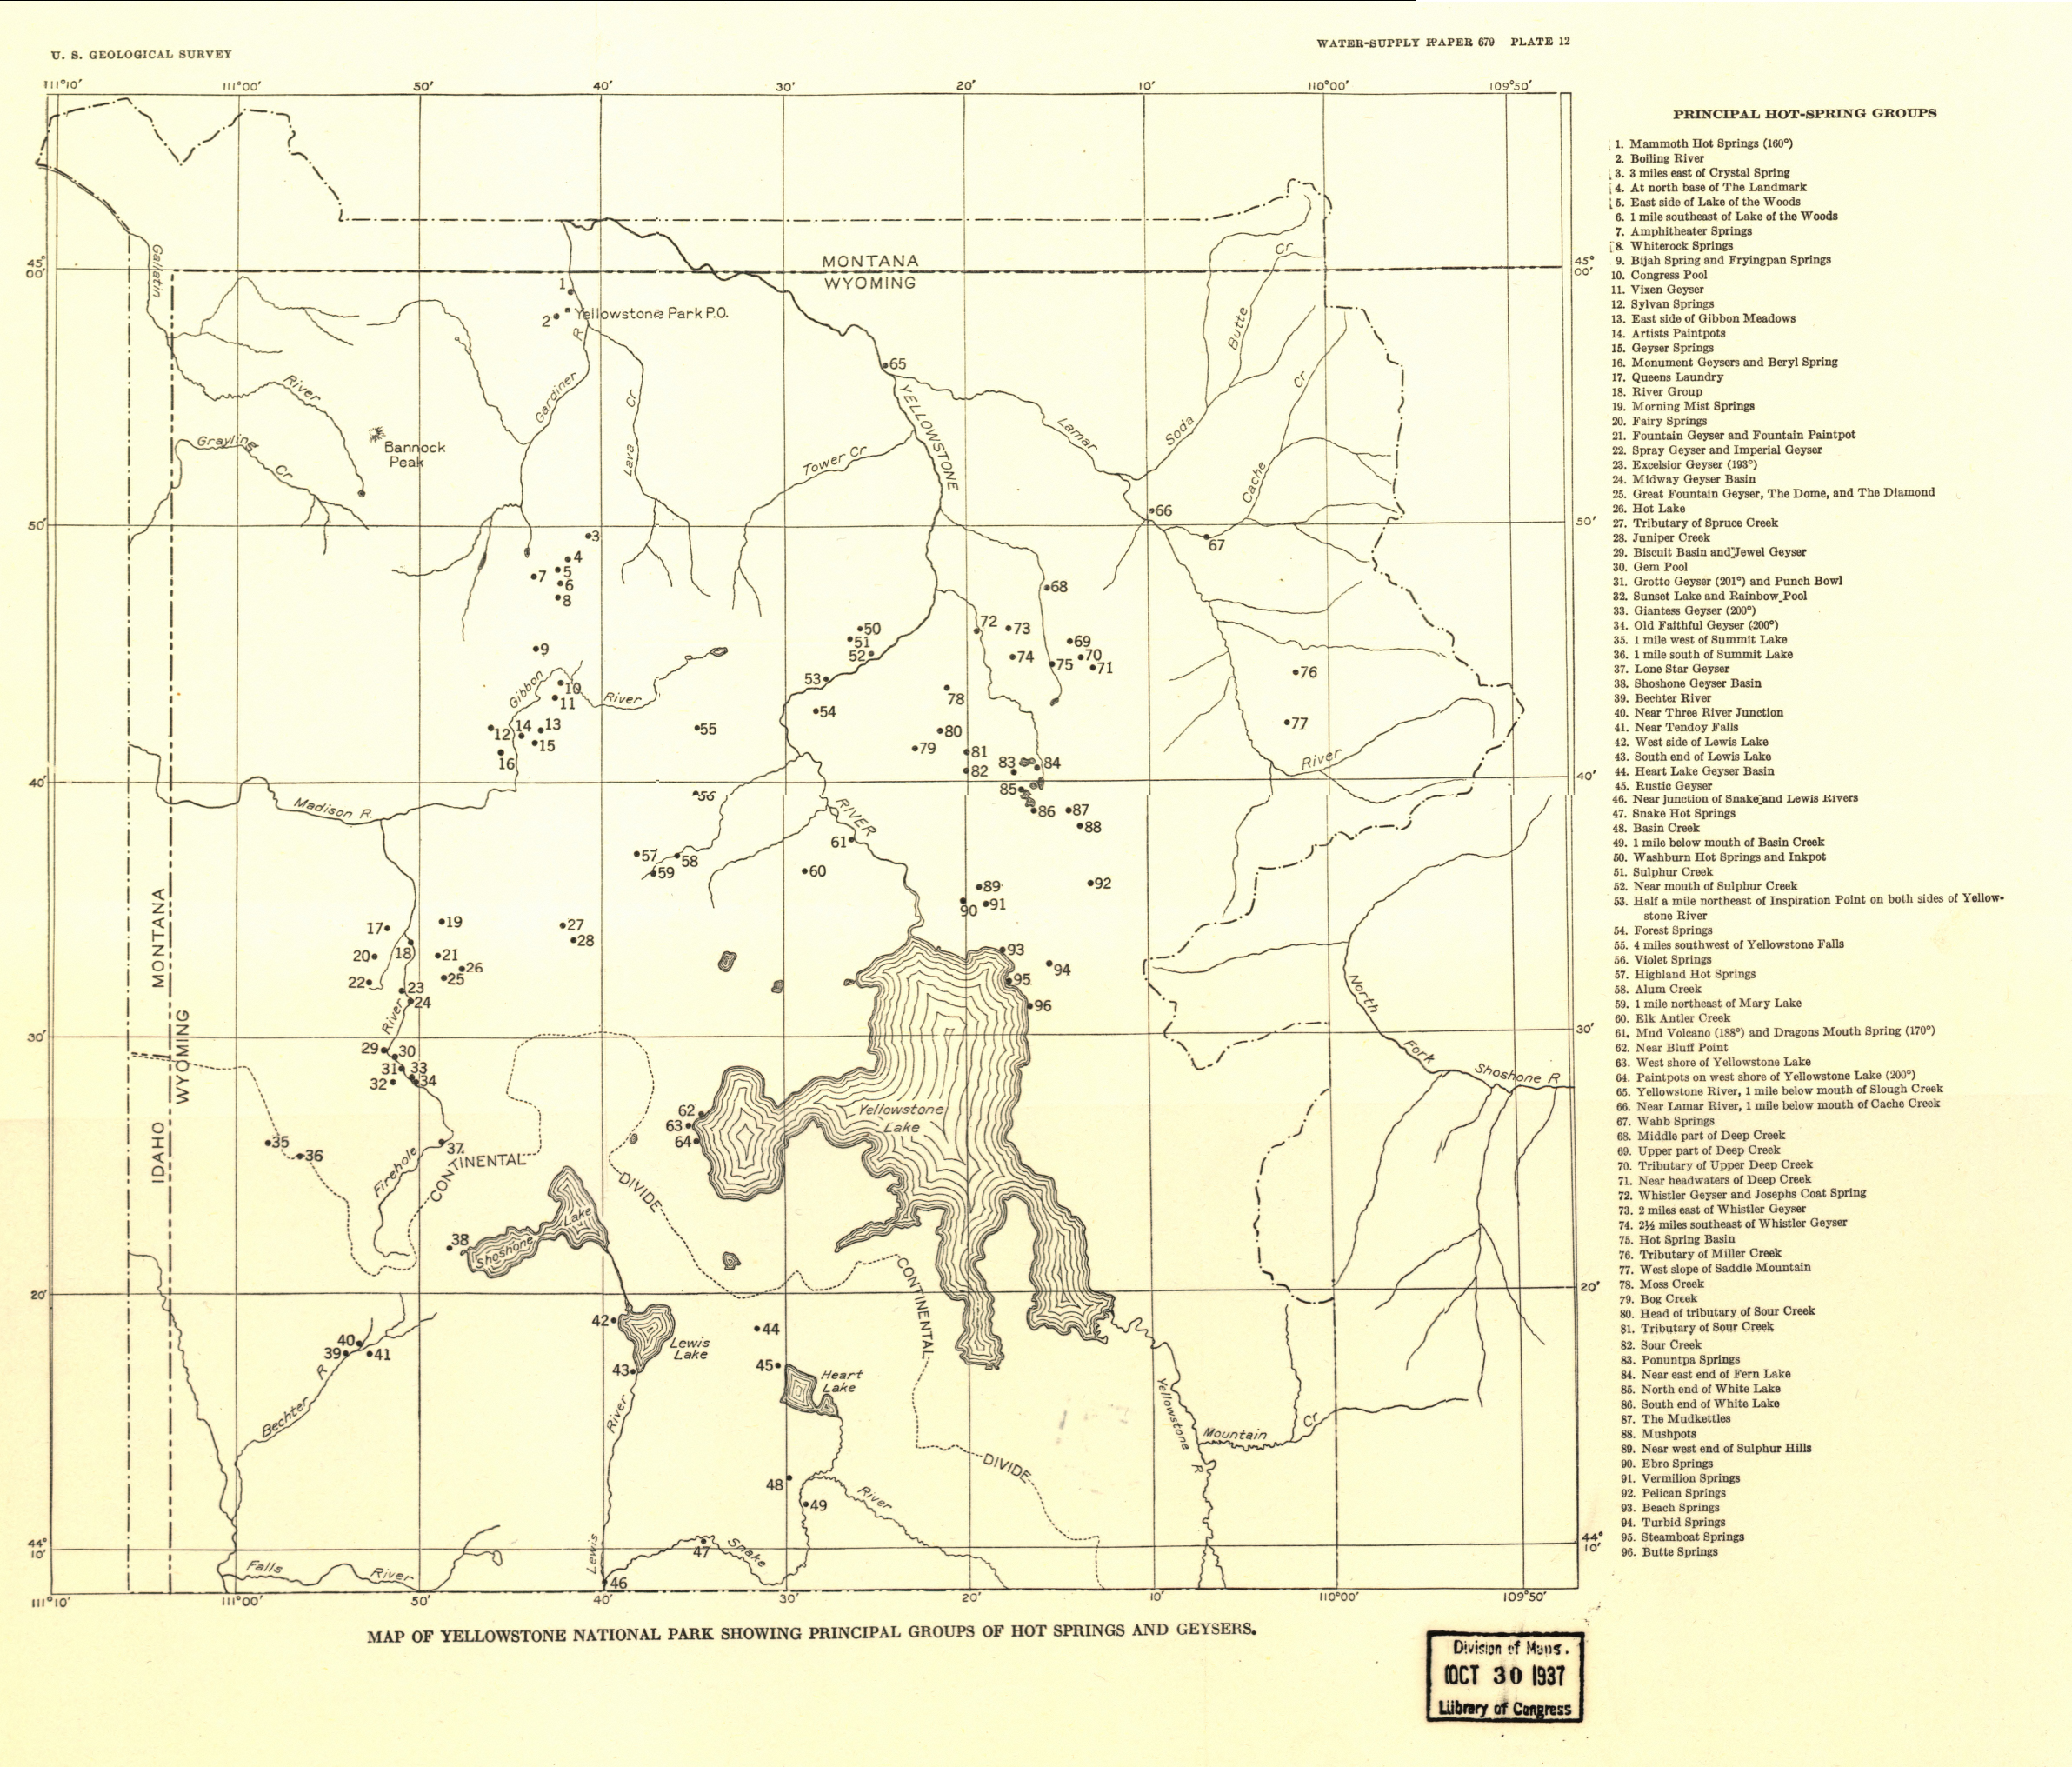 Yellowstone National Park Water Supply Map from the Library of Congress Collection